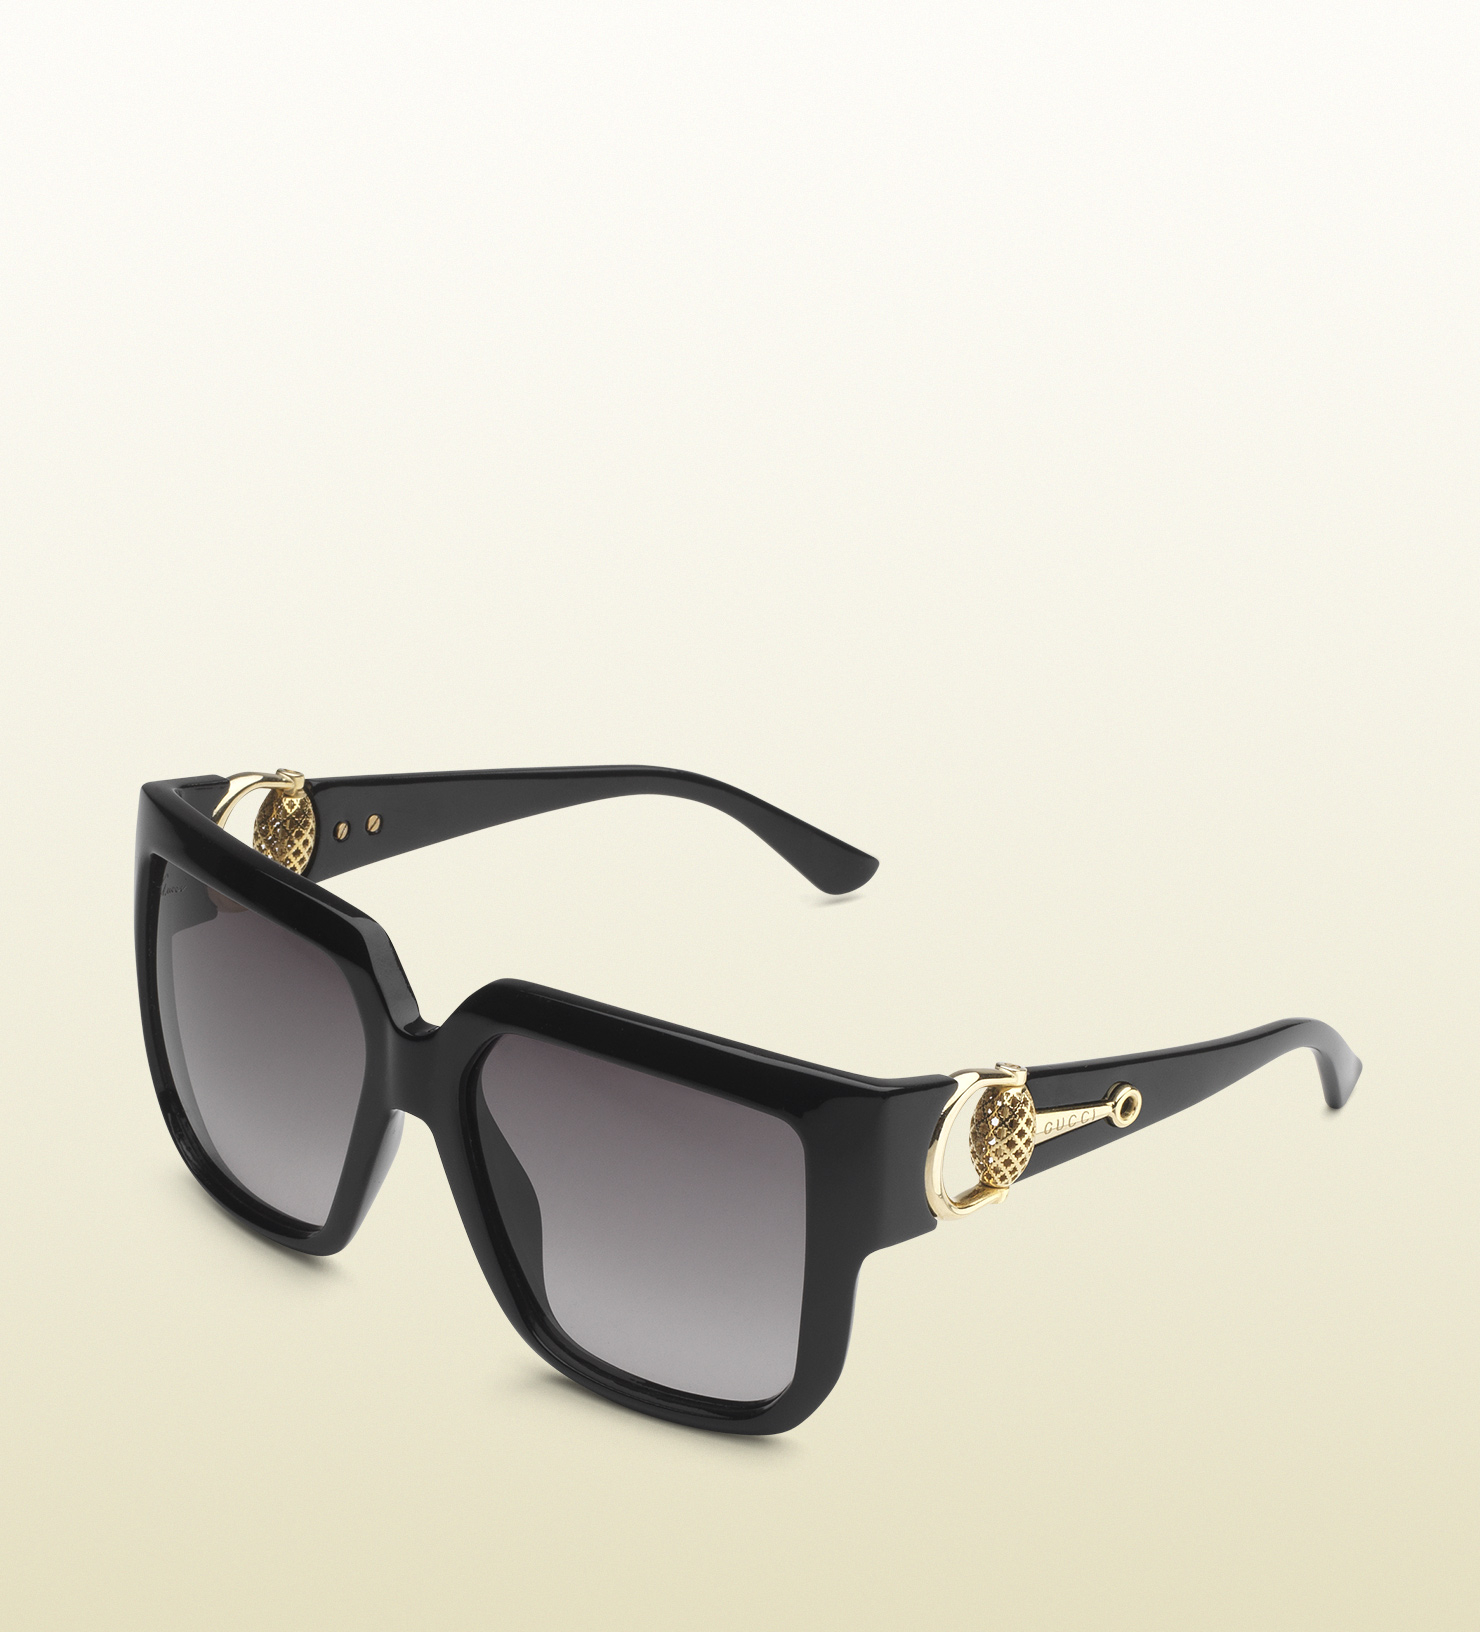 ba418327af Gucci Oversized Square-frame Horsebit Sunglasses in Black - Lyst